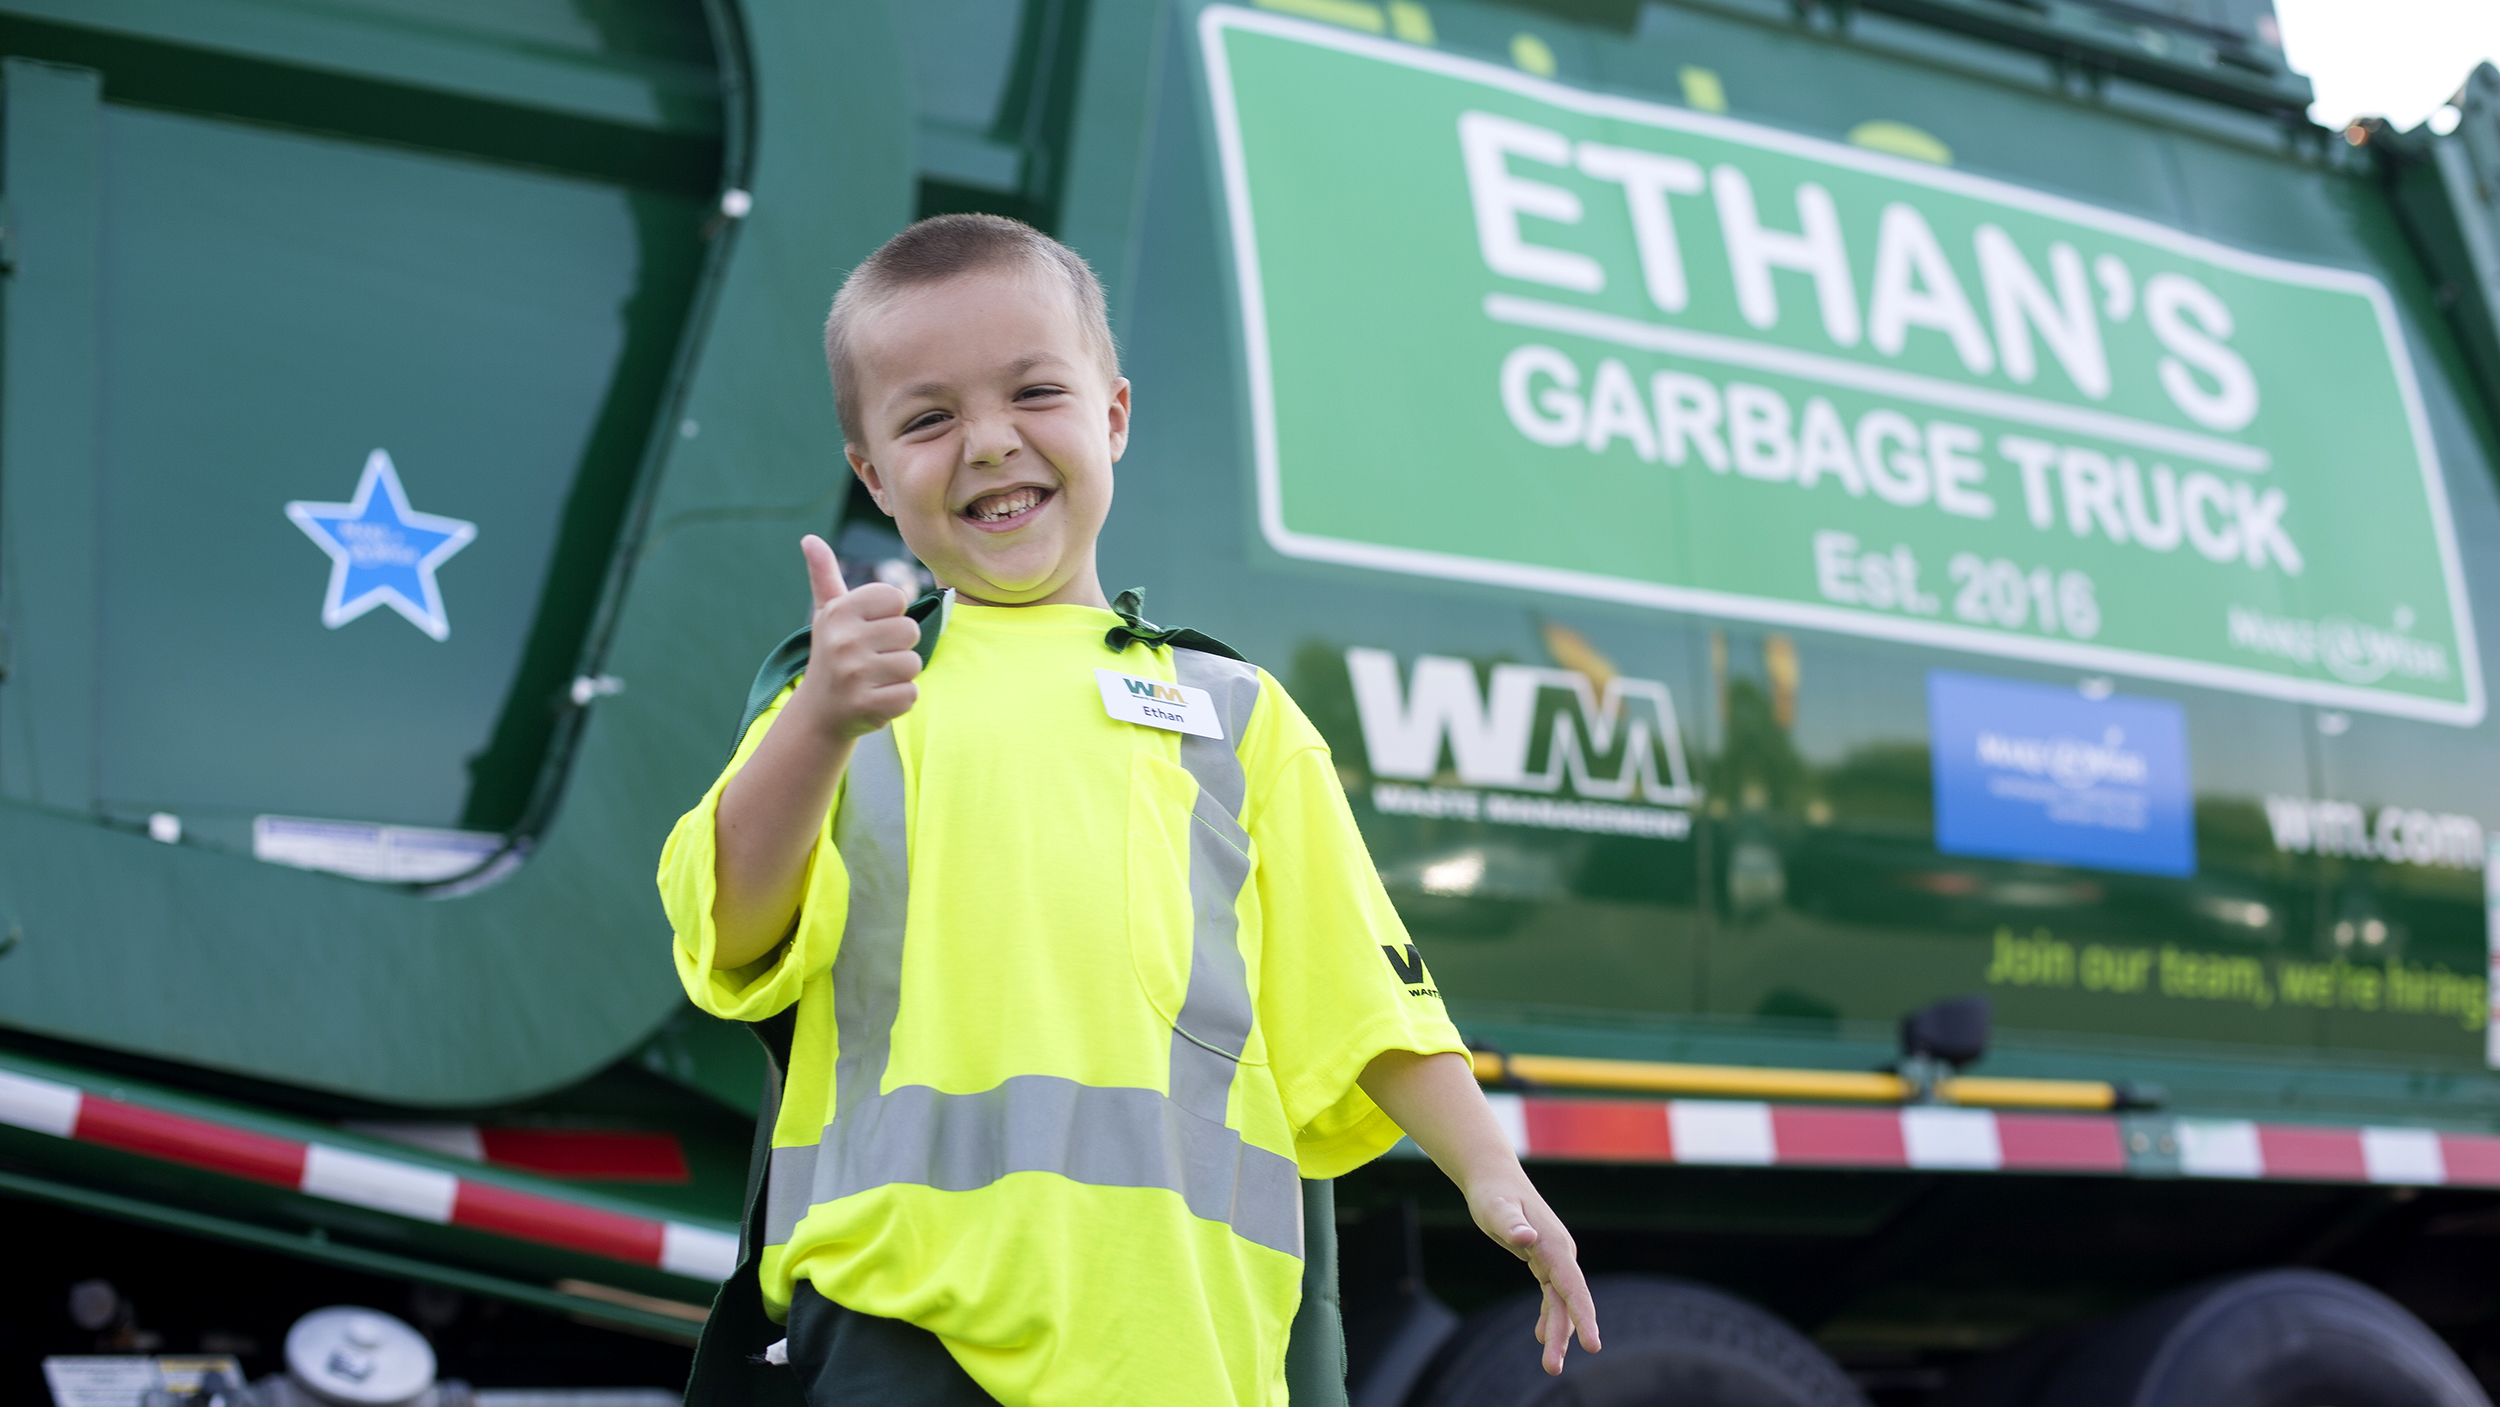 Boy With Cystic Fibrosis Becomes Garbageman For A Day